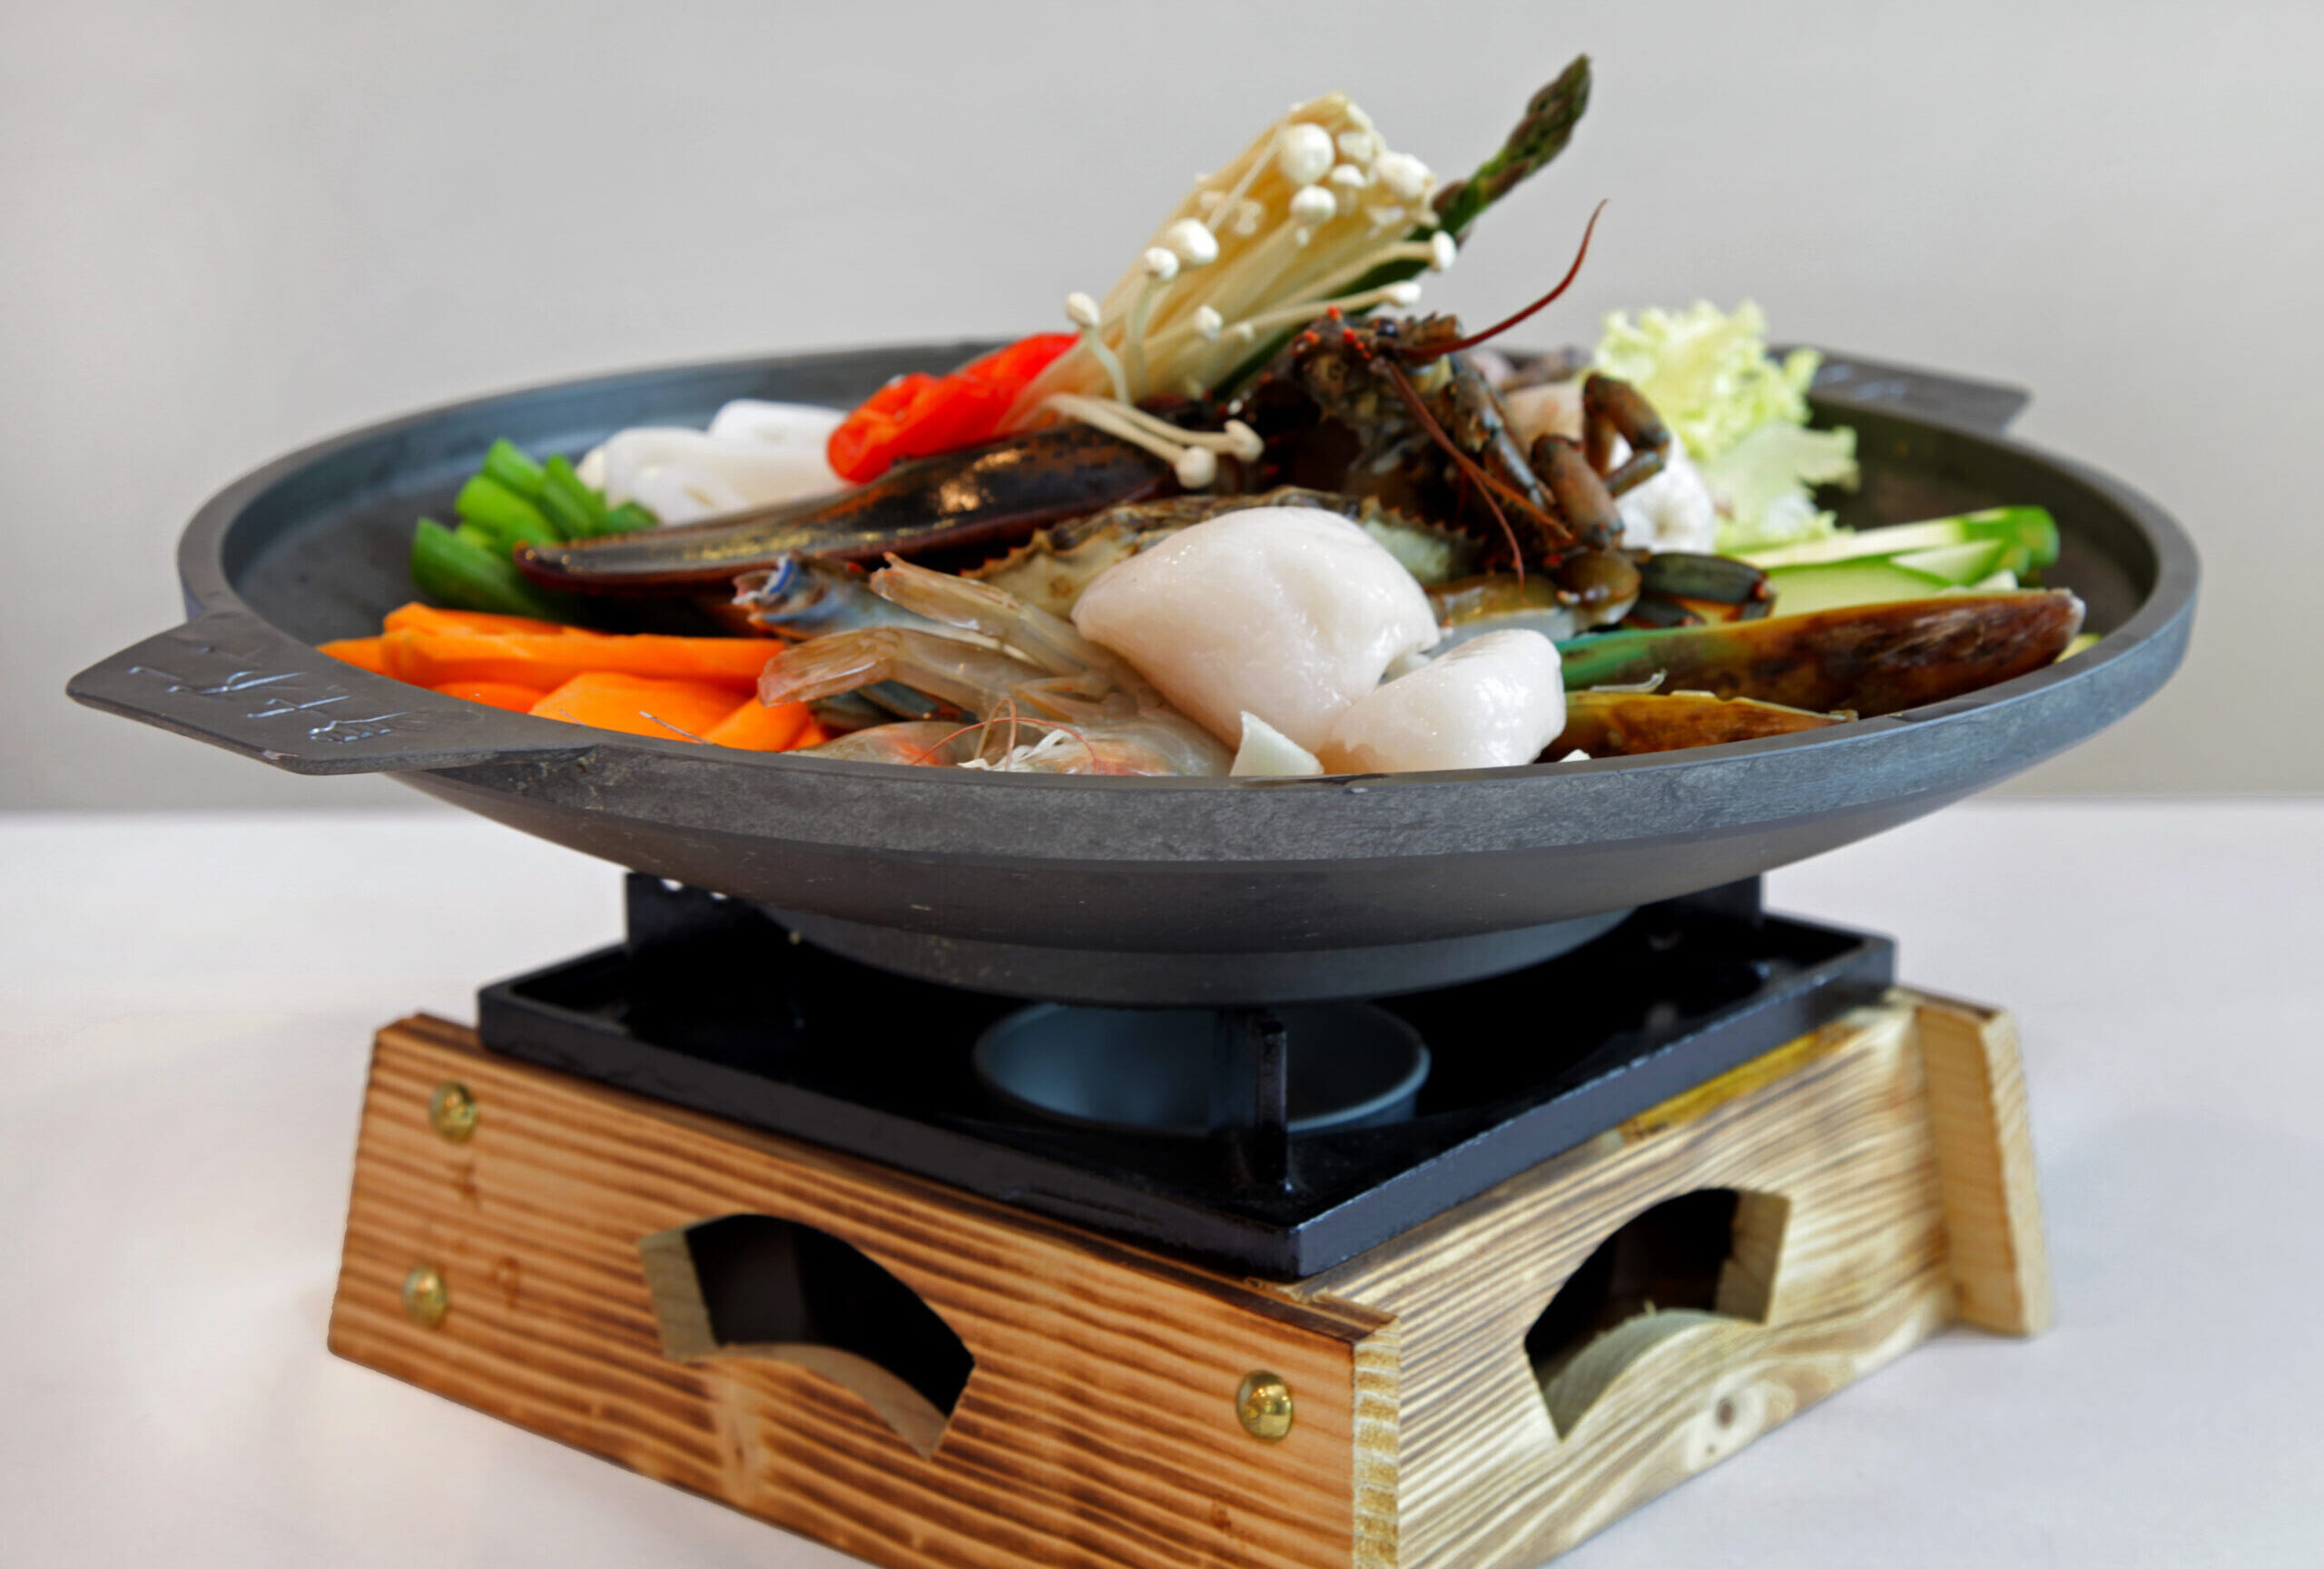 Seafood Gui <br> Marinated seafood grilled and servered on a hot sizzling pan.